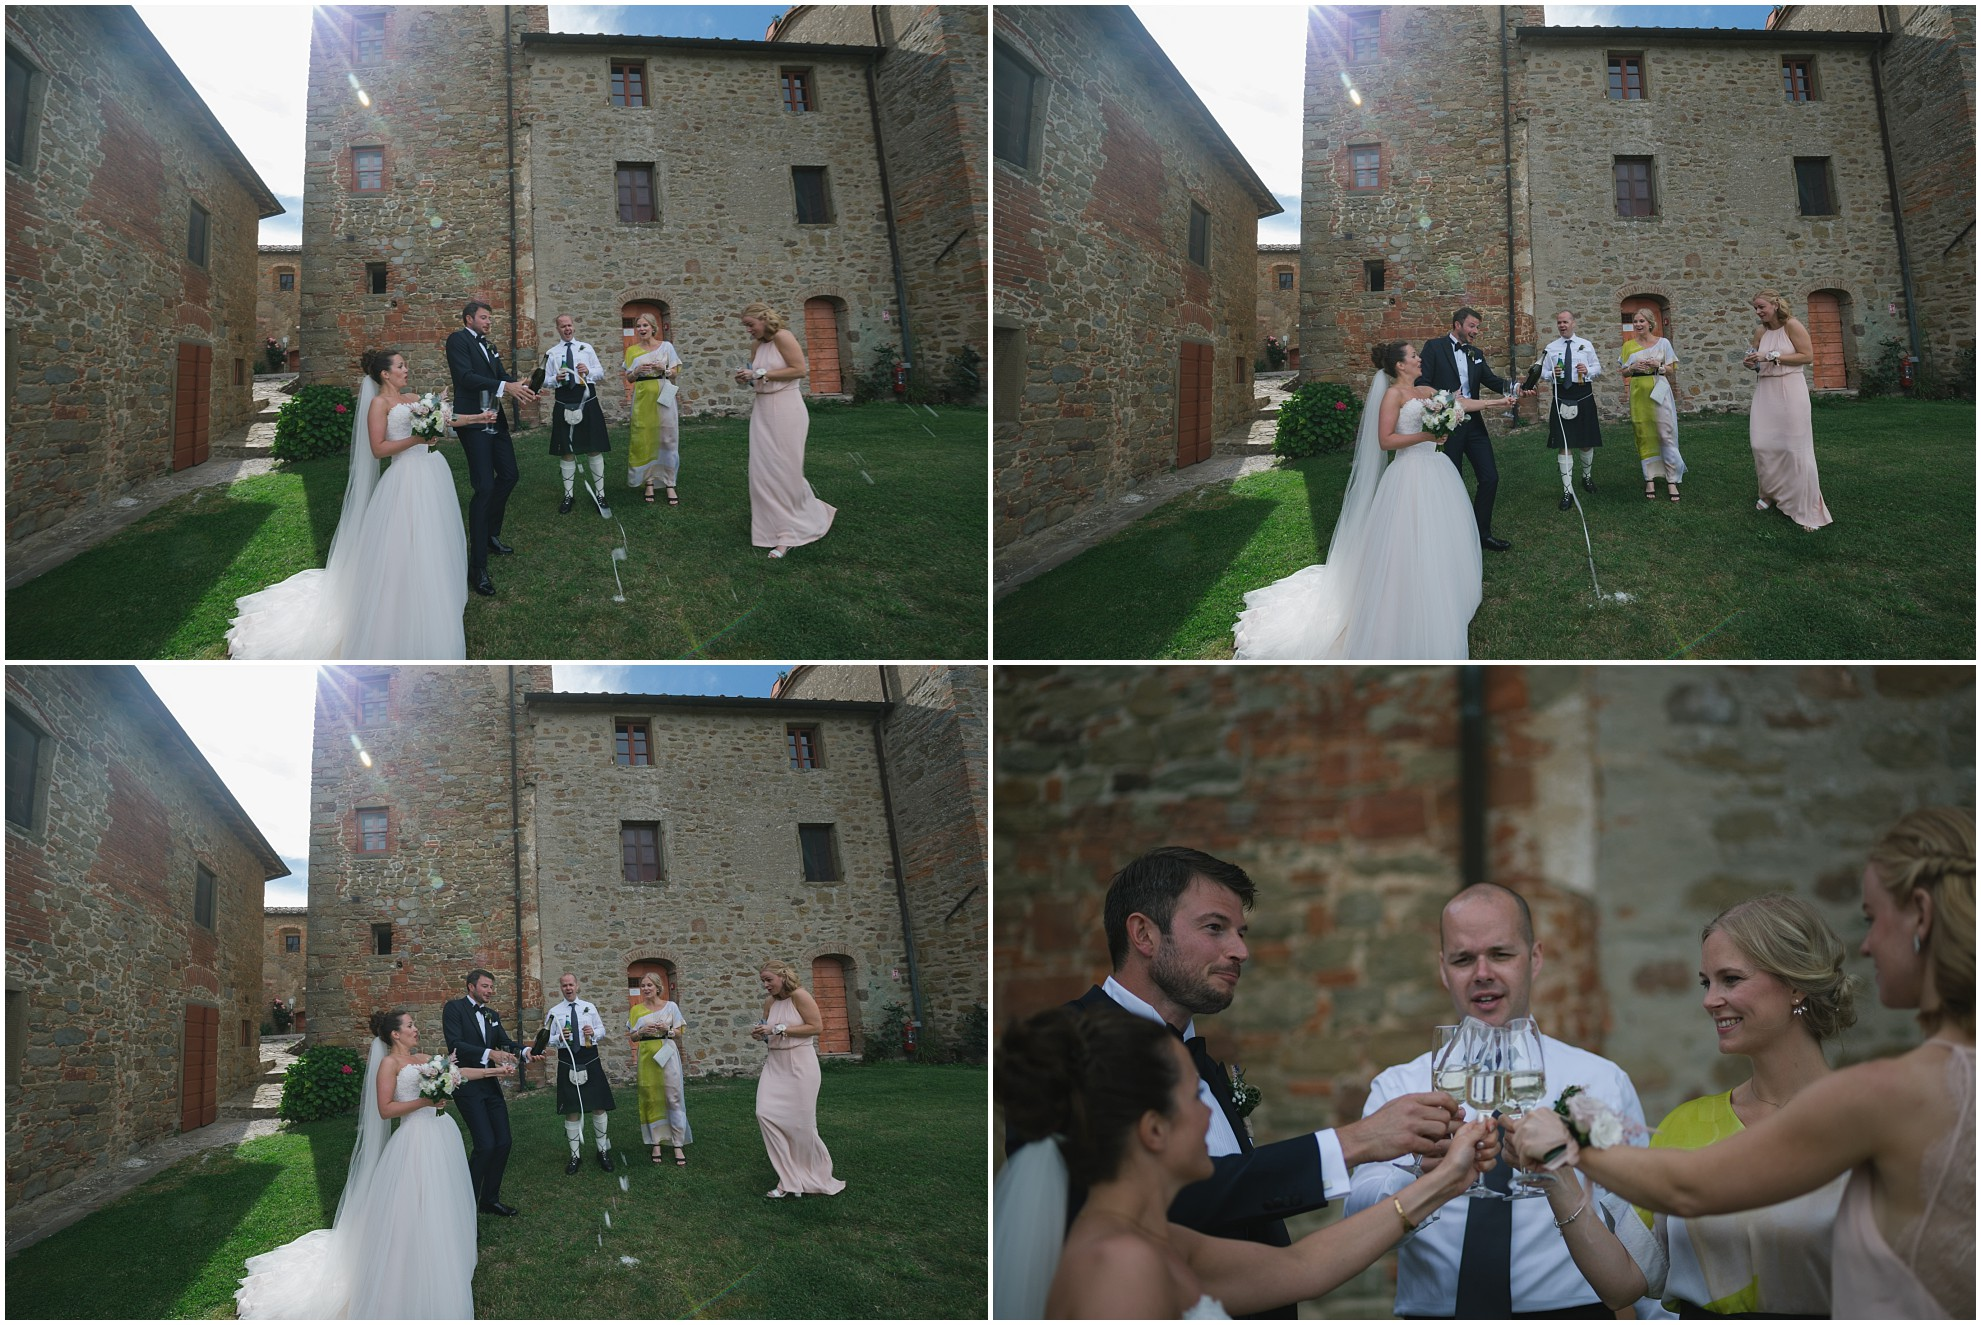 tuscany-wedding-photographer-051